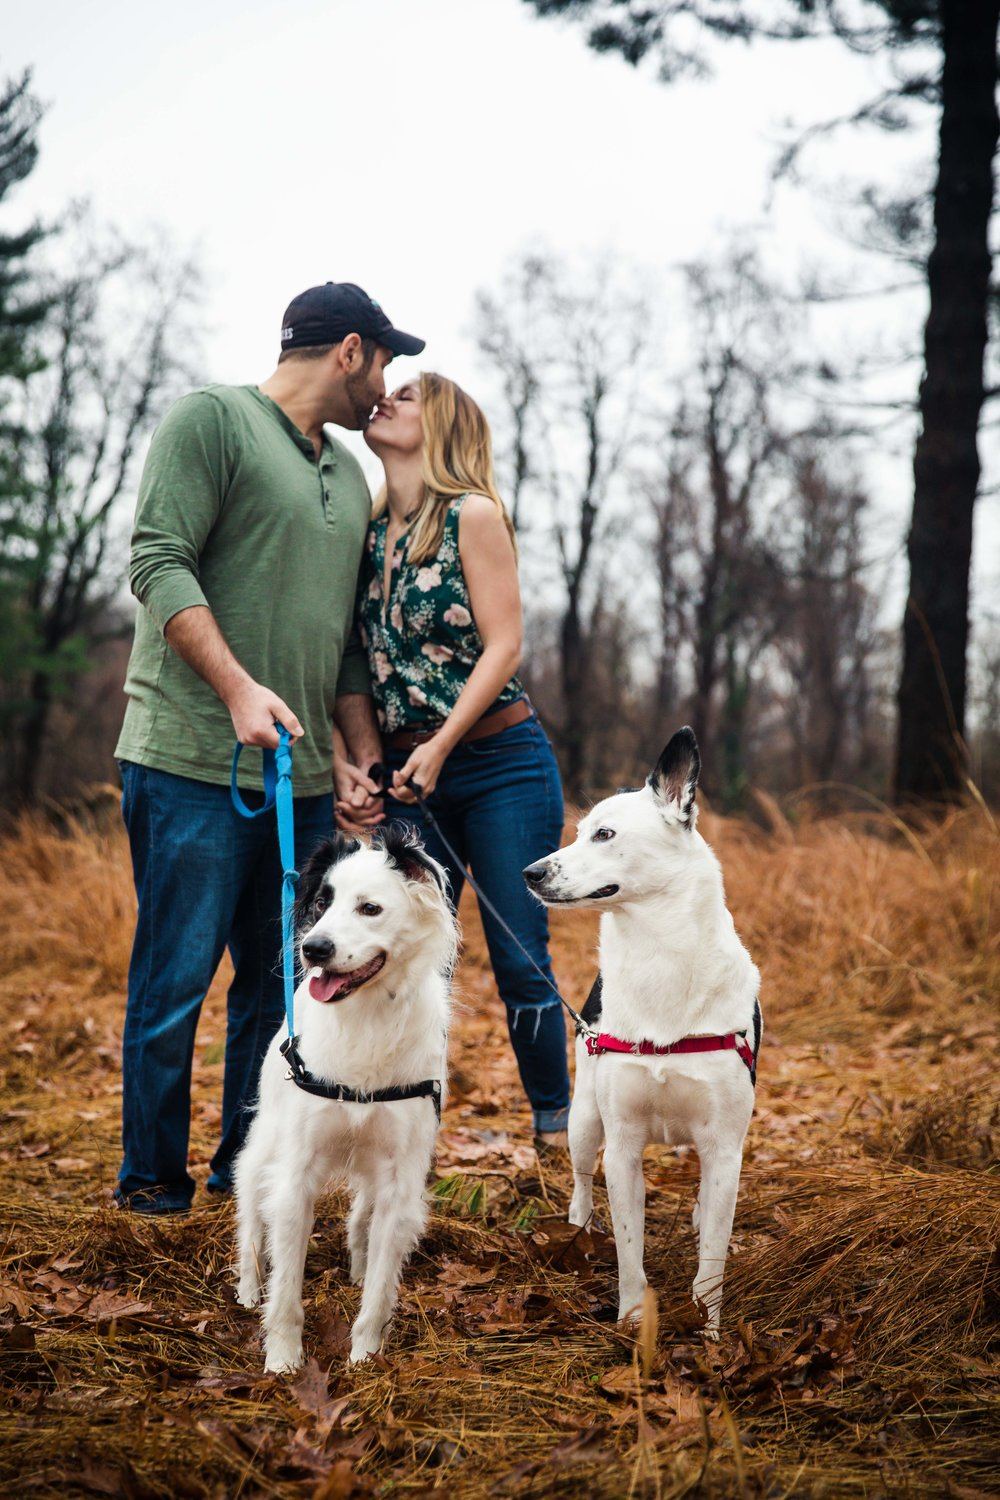 Strawberry Mansion - Family Photoshoot with Dogs-7.jpg